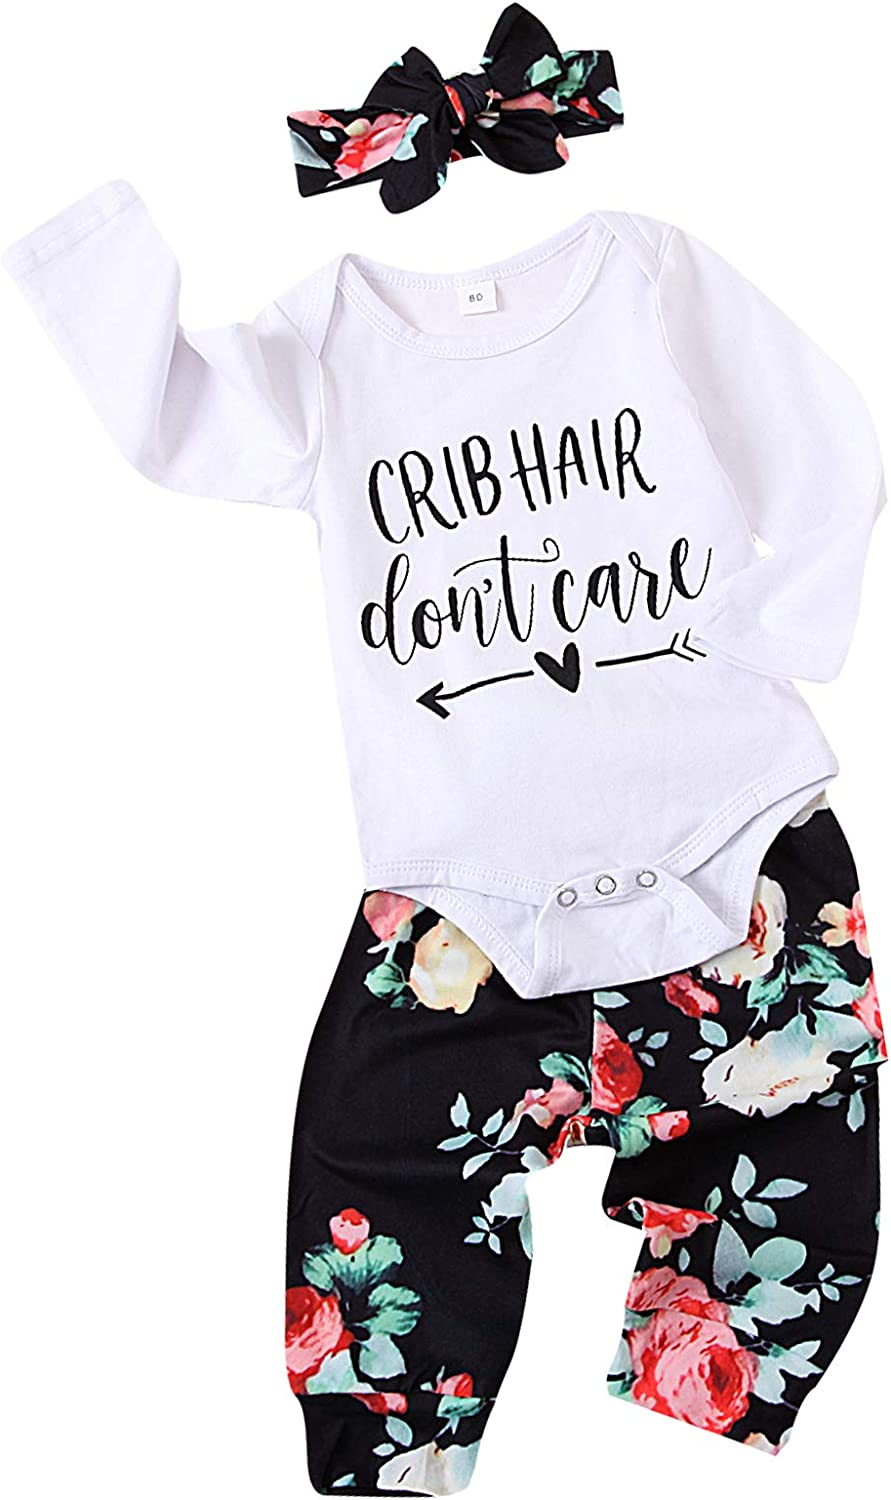 Newborn Baby Girl Clothes Cute Infant Romper Funny Letter Printing Floral Pants Baby Girl Outfits Set